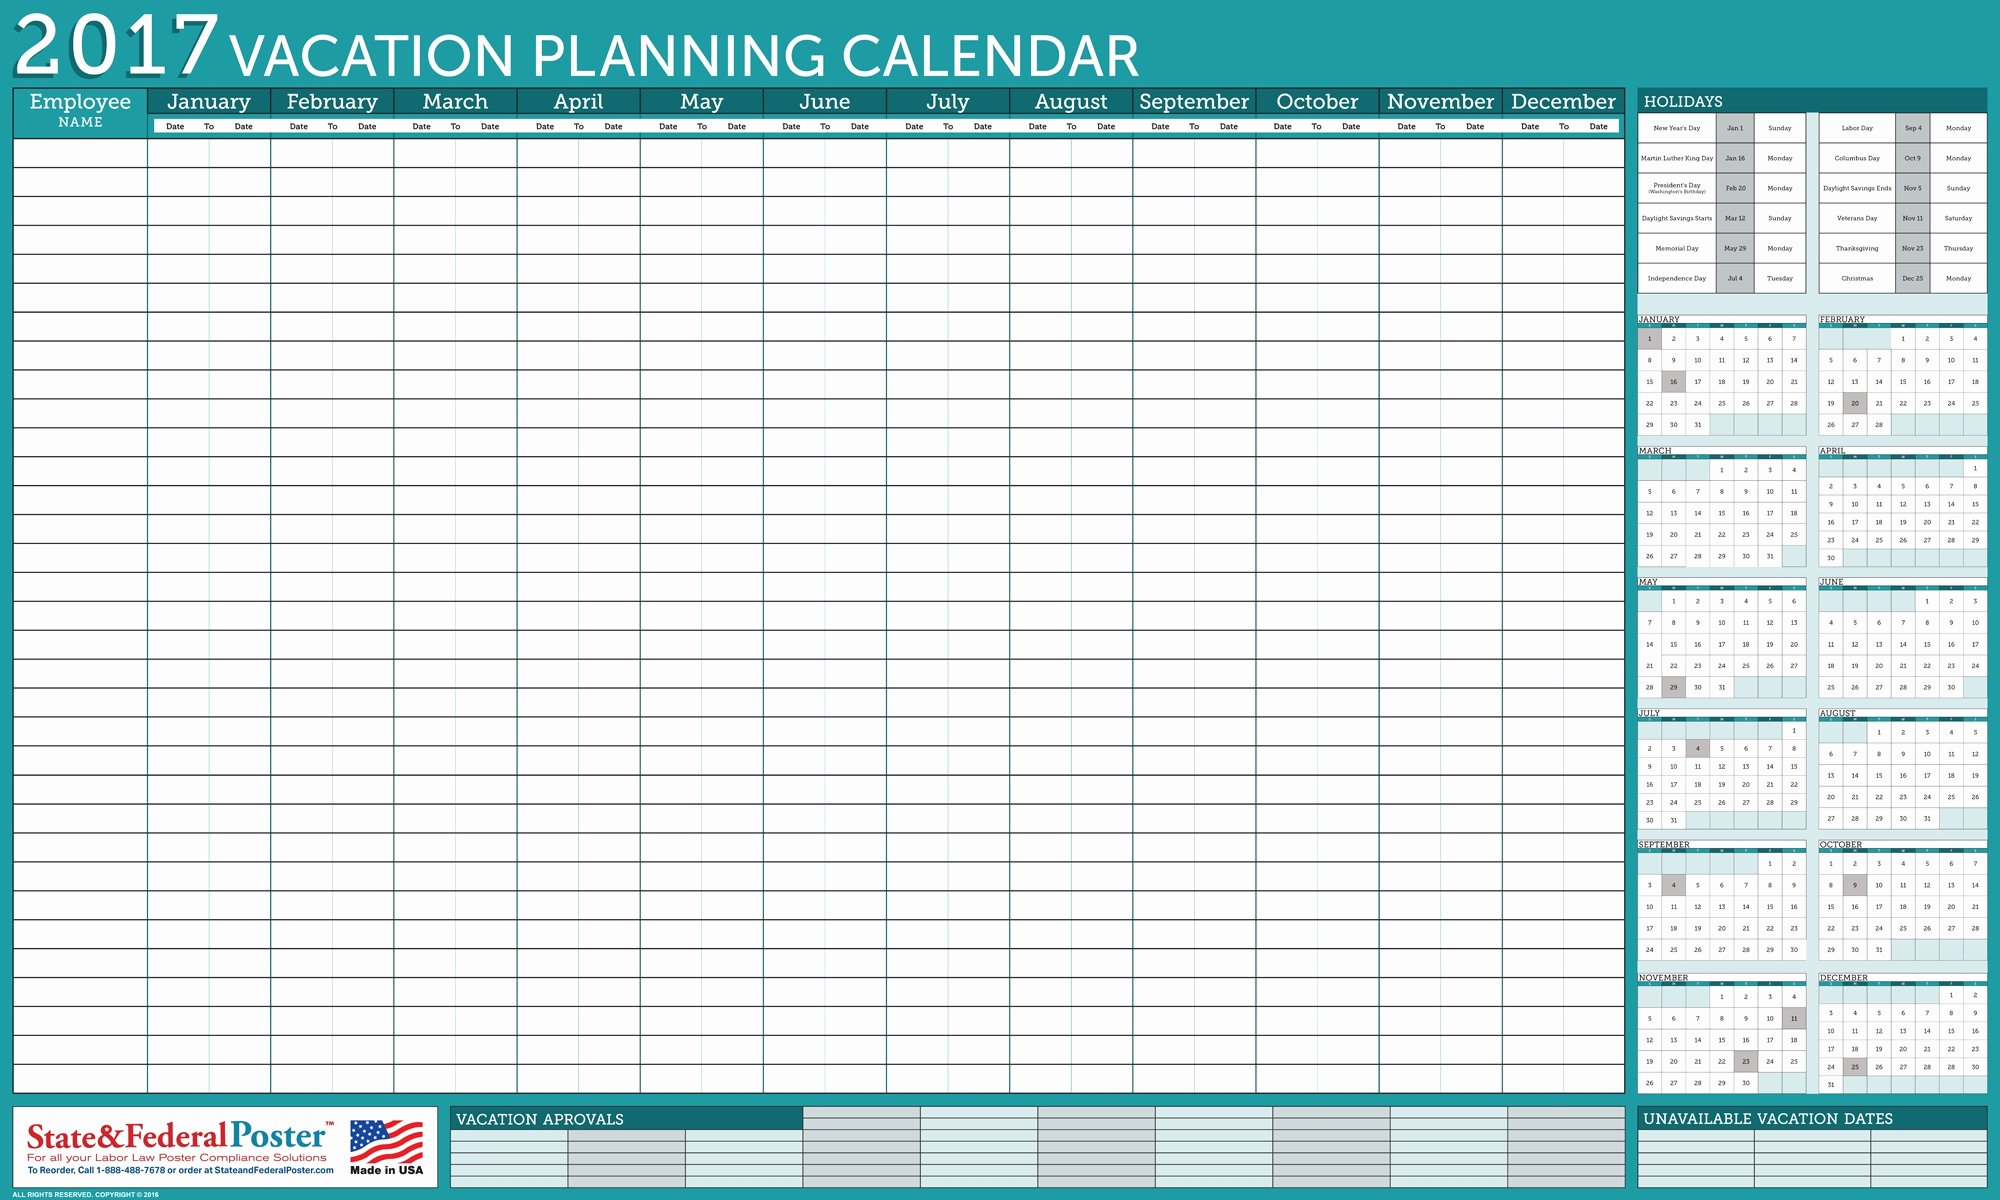 Vacation Schedule Template 2016 Best Of Fice Wall 2017 Vacation Planner Turquoise 40 X 24 Inches